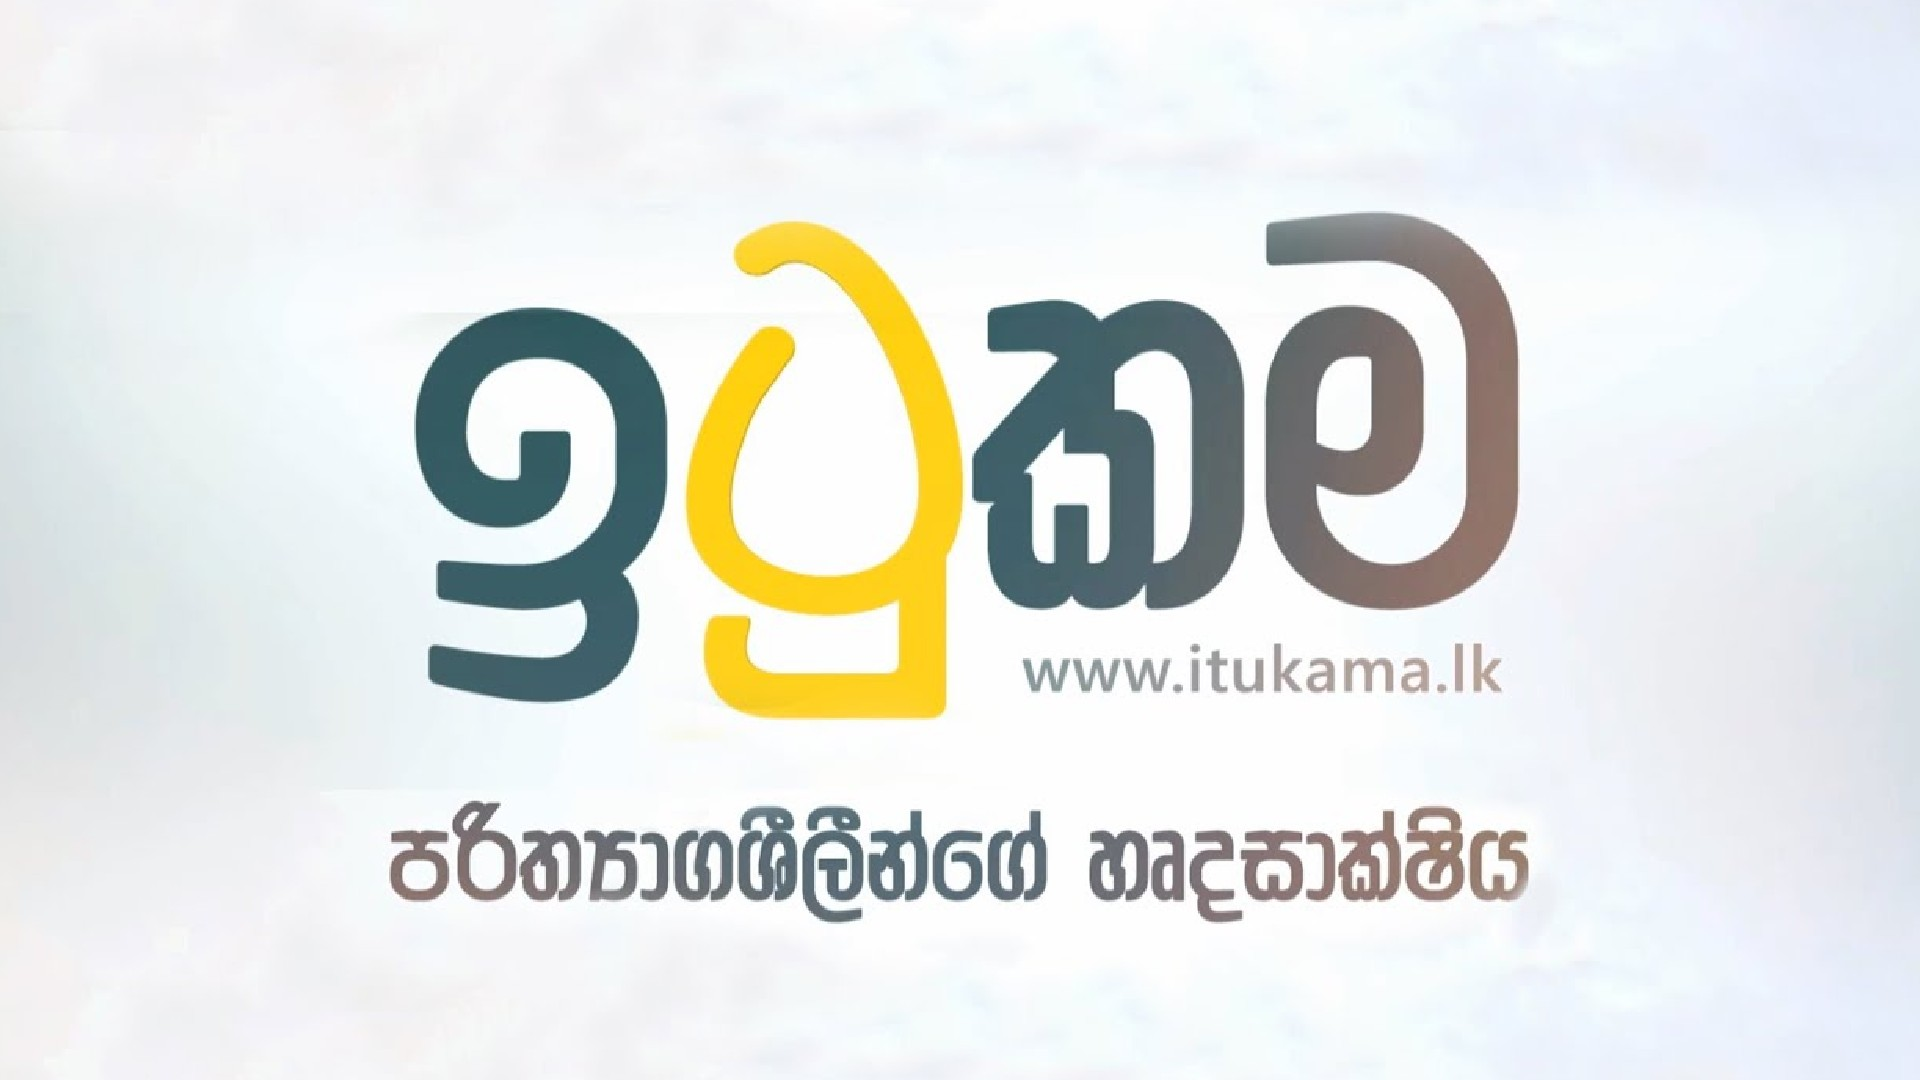 Auditor General commences audit into ITUKAMA Covid-19 Fund